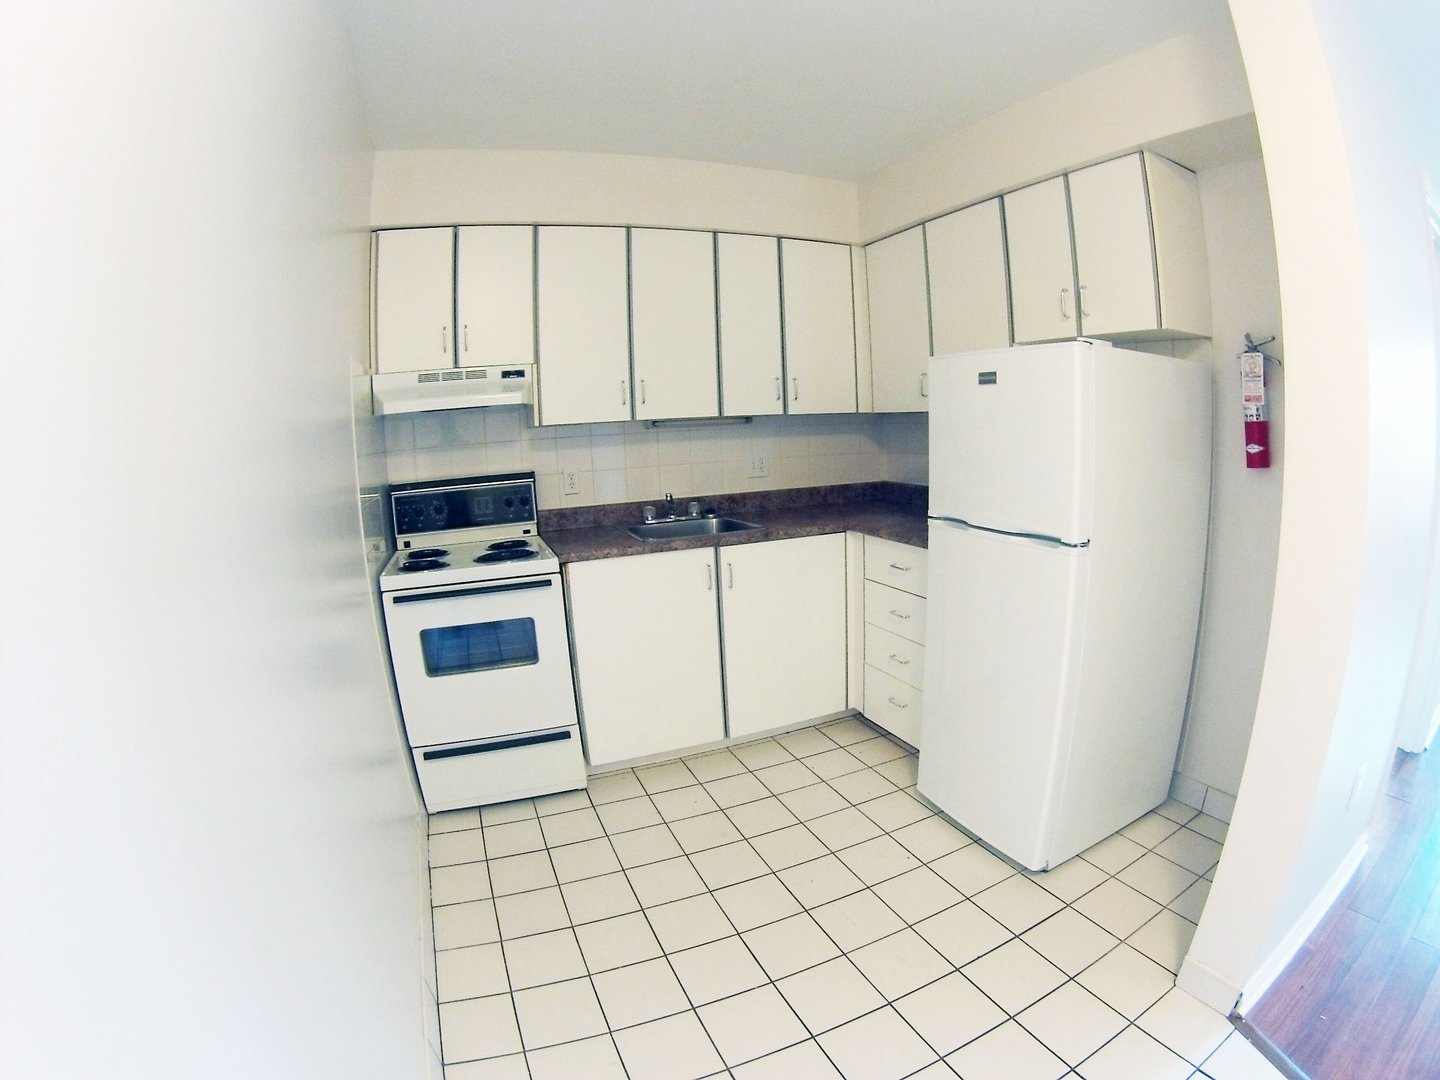 Apartment for rent at 96 Highfield Park Drive B, Dartmouth, NS. This is the kitchen with tile floor.